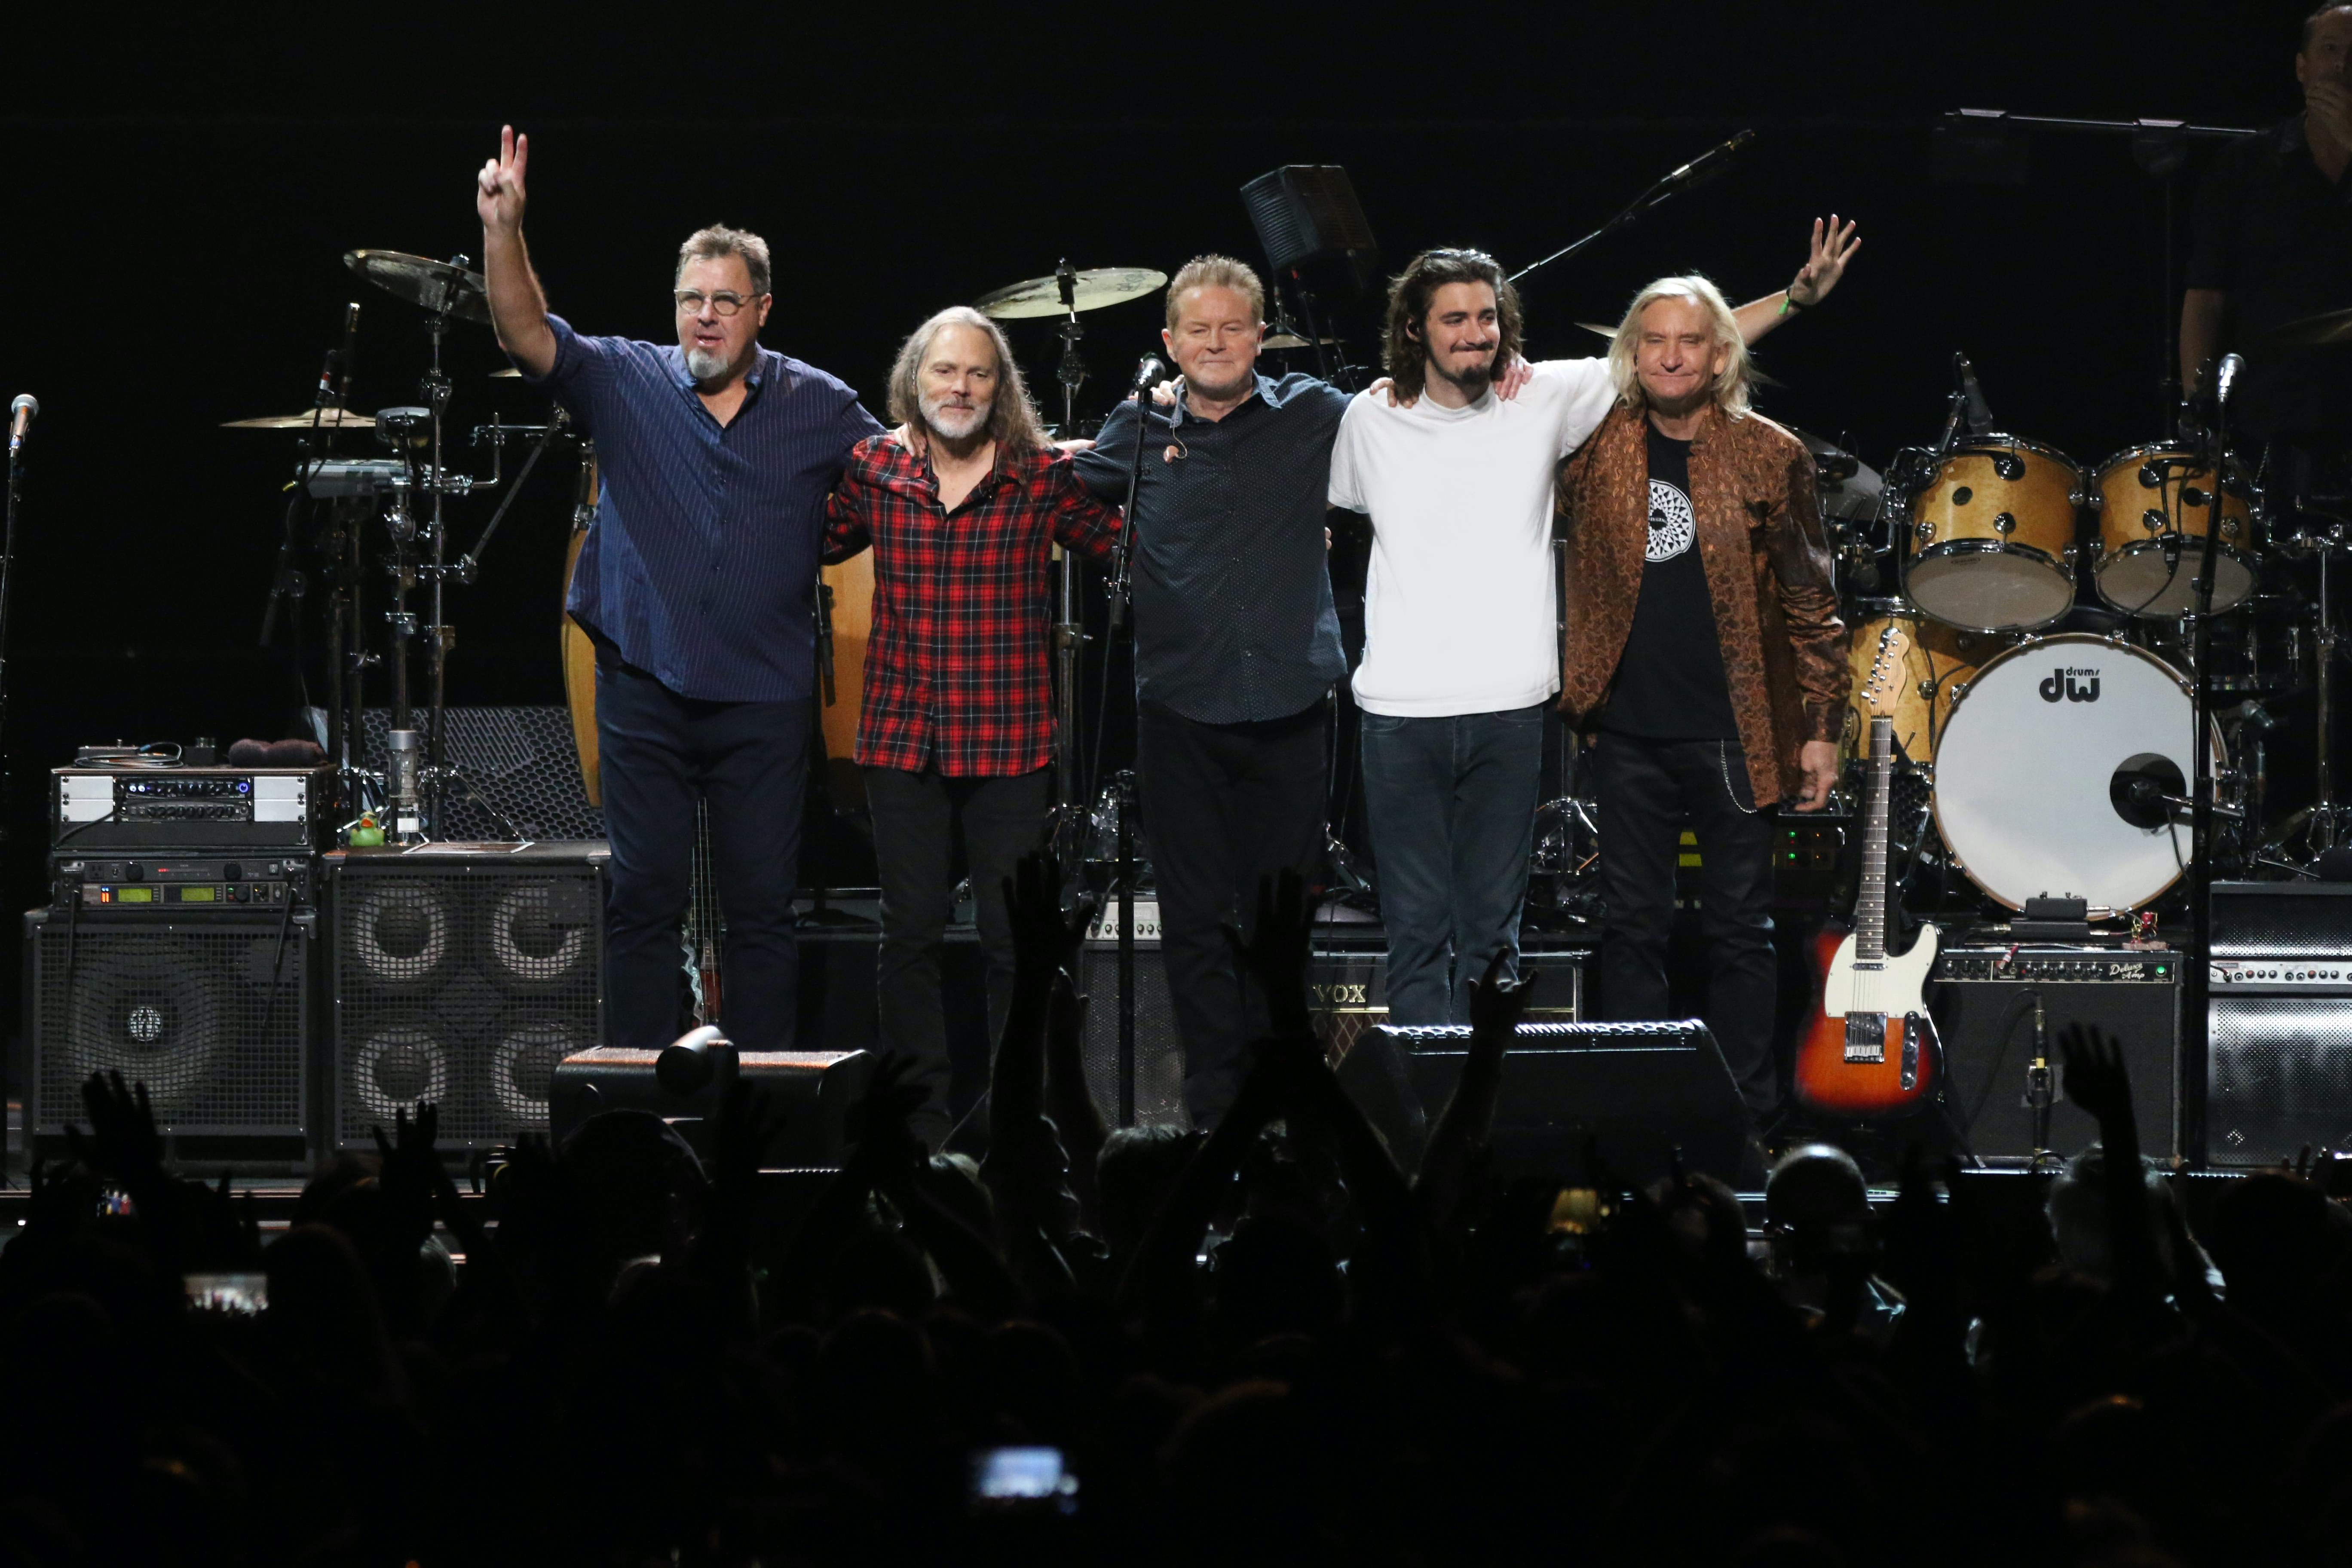 Eagles 2020 Tour | American Airlines Center in Dallas